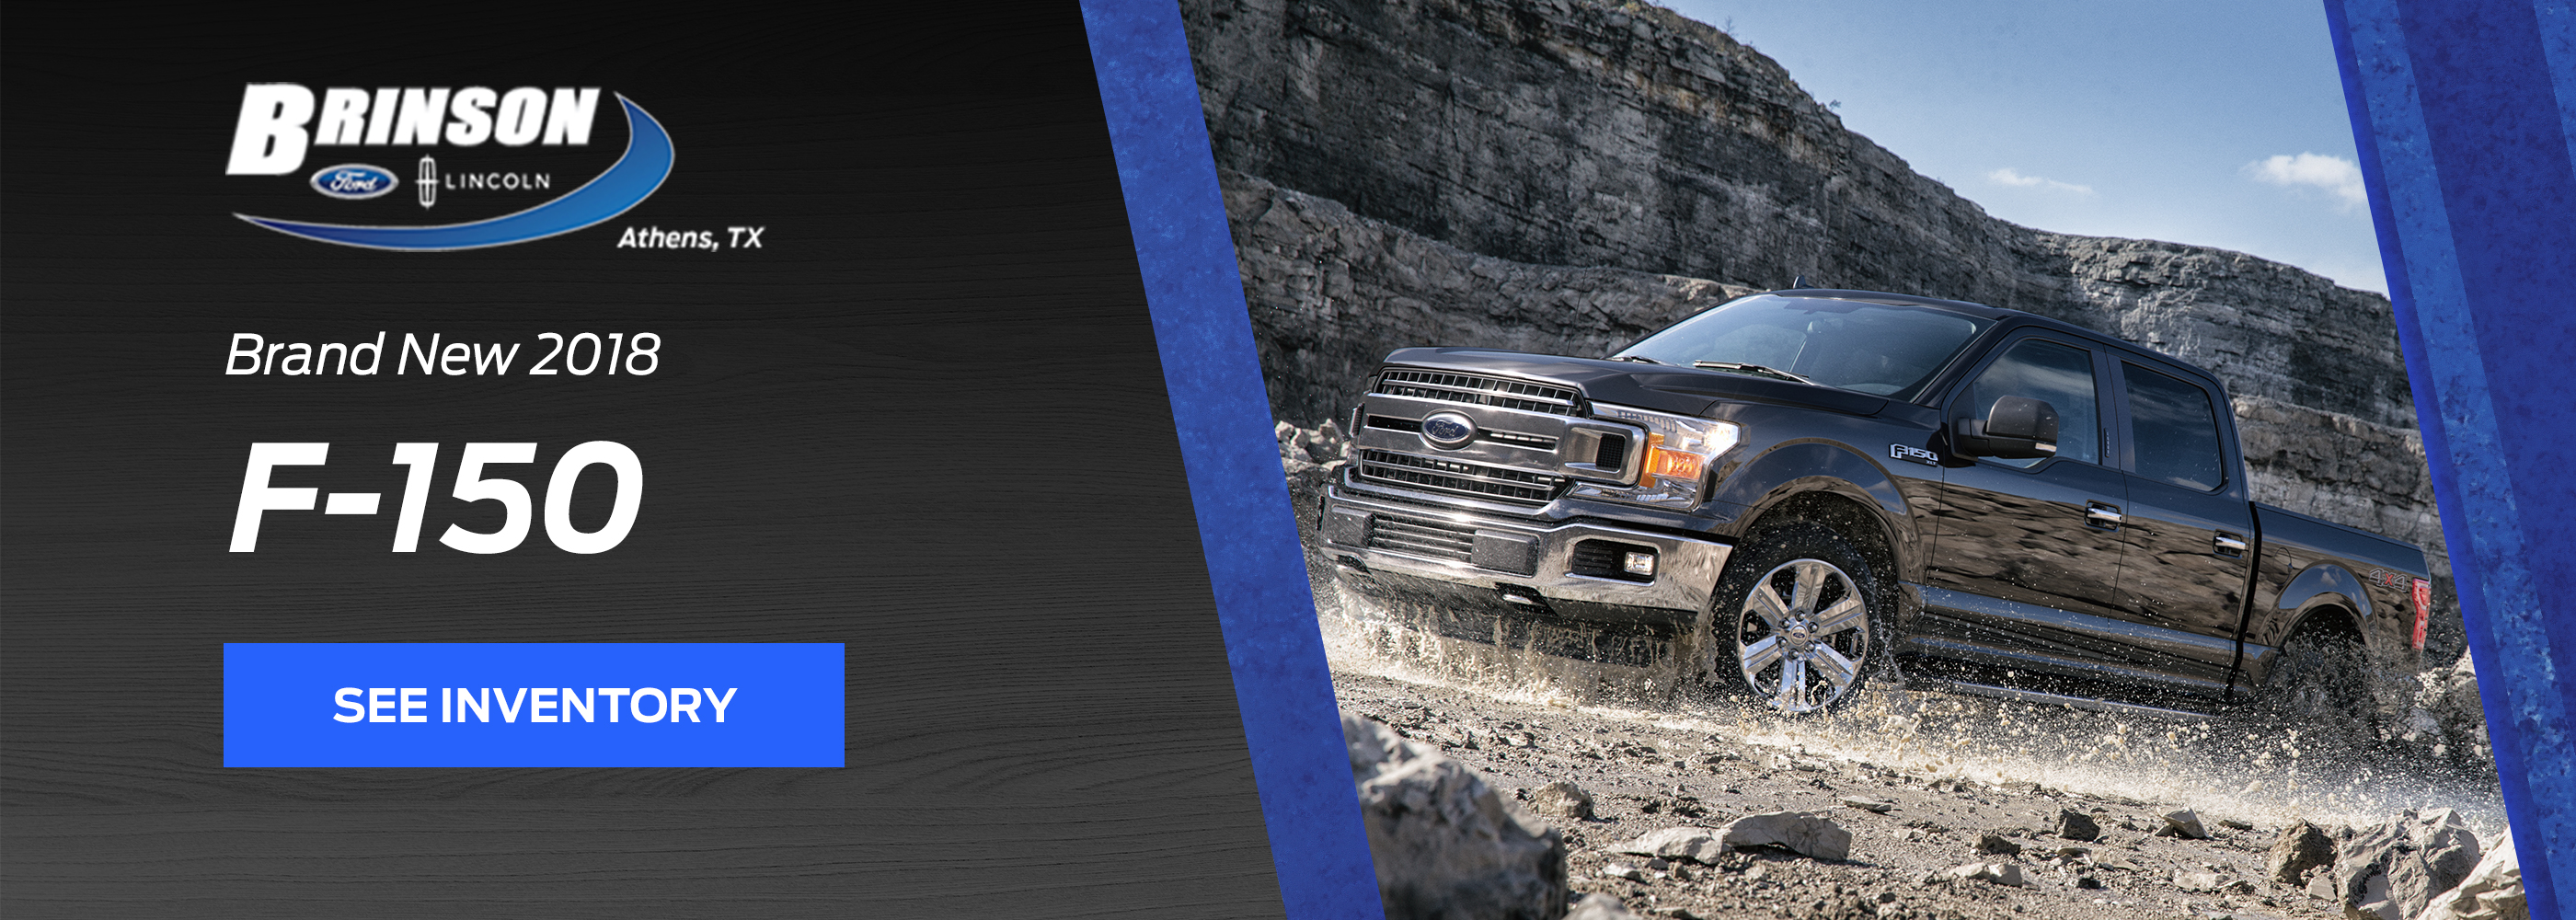 Ford Lincoln Dealer Athens Tx Brinson Ford Lincoln